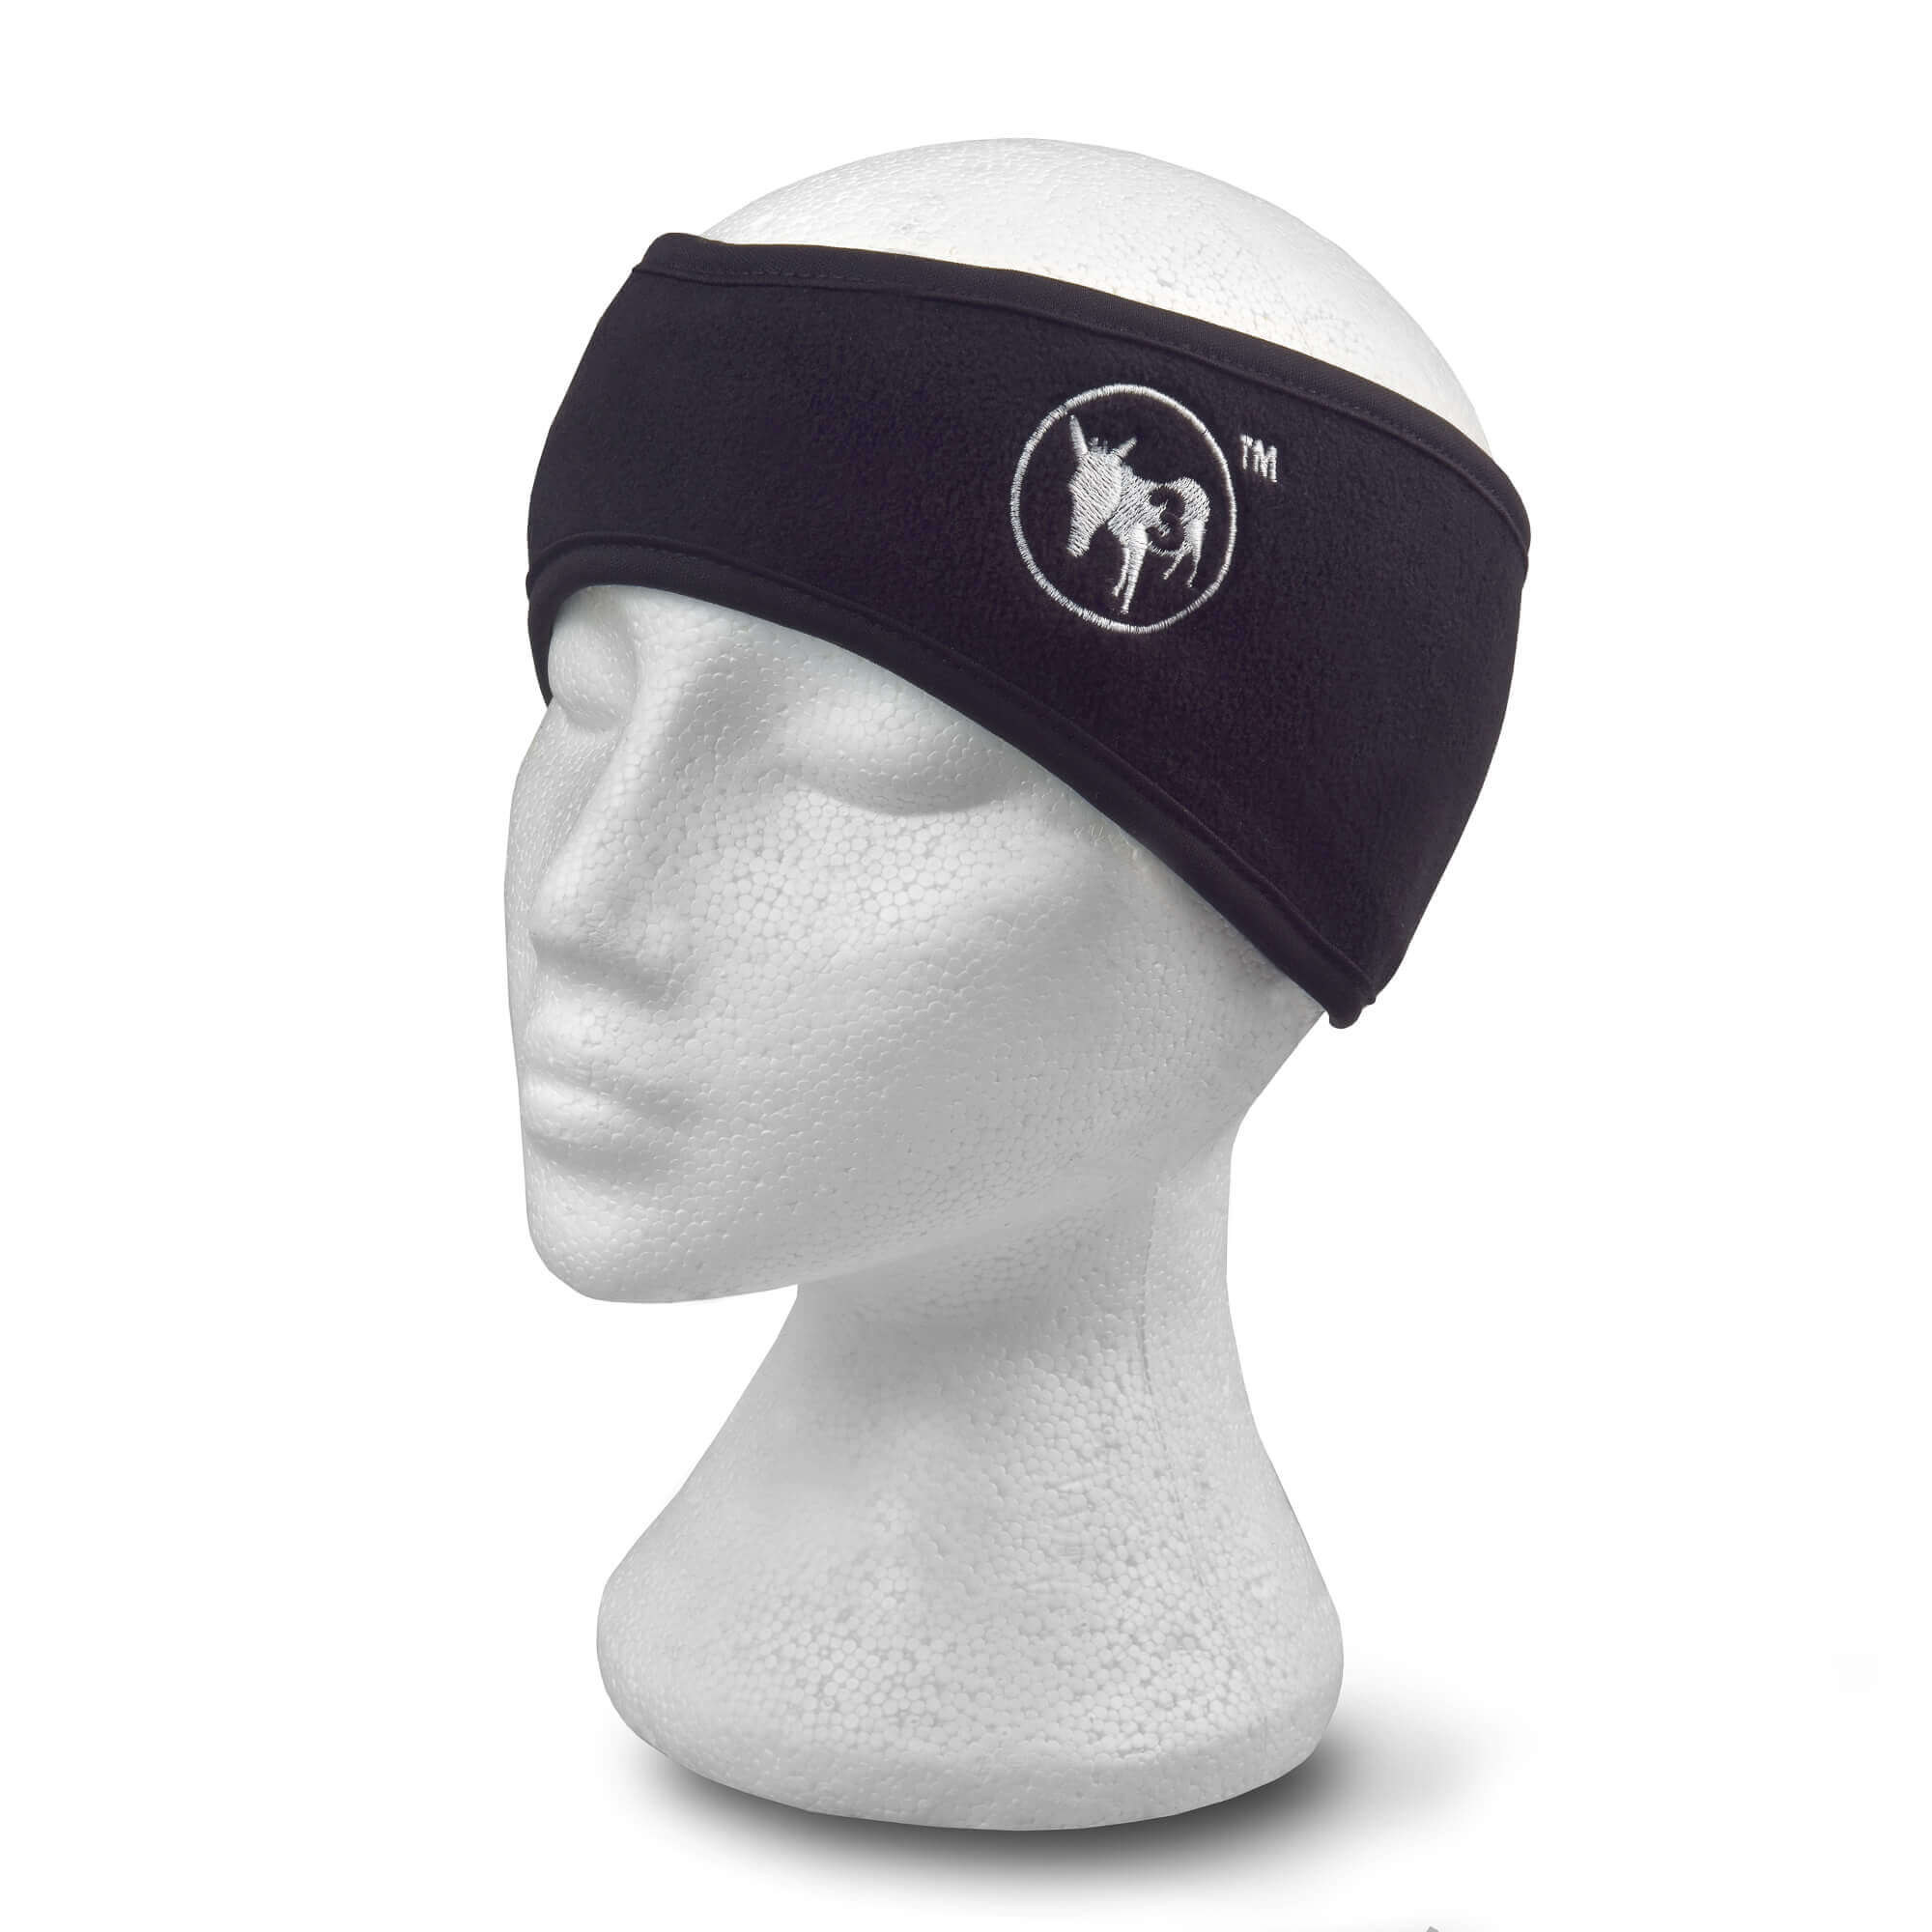 black-headband-on-white-head-dummy